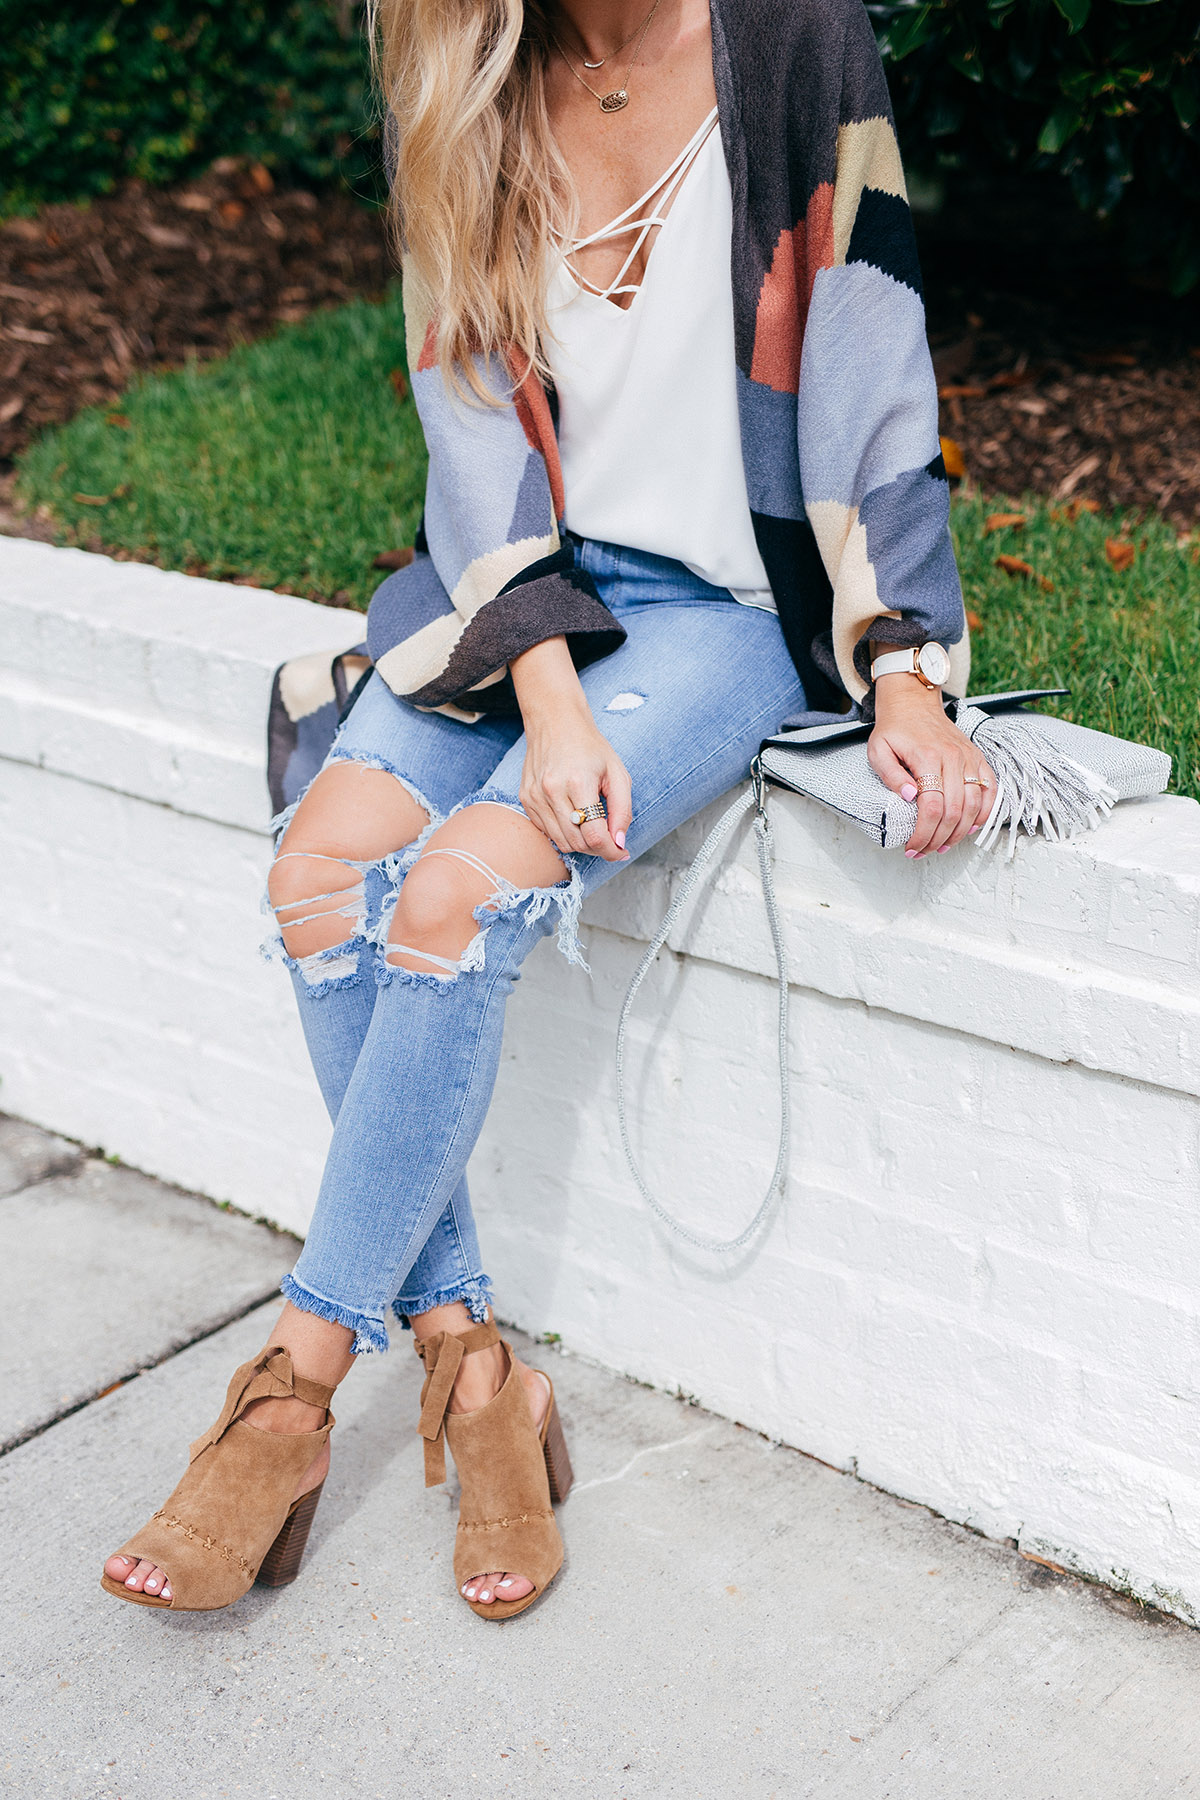 Late Summer Outfit Ideas | Transitioning Into Fall | Distressed Jeans and Open Toe Booties